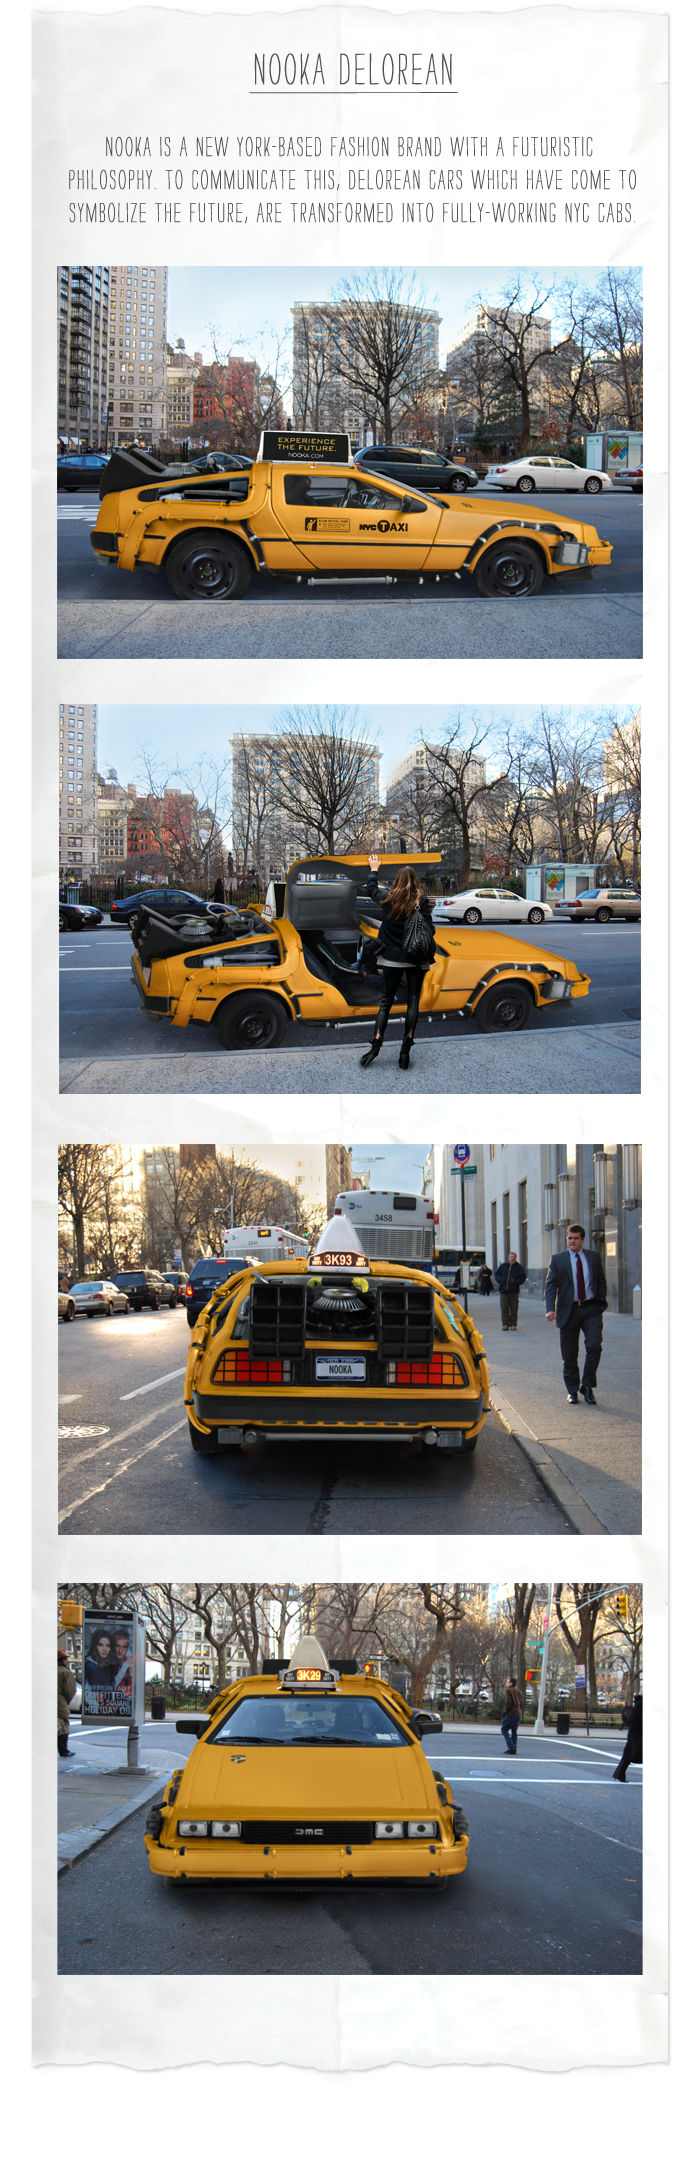 Delorean_Taxi